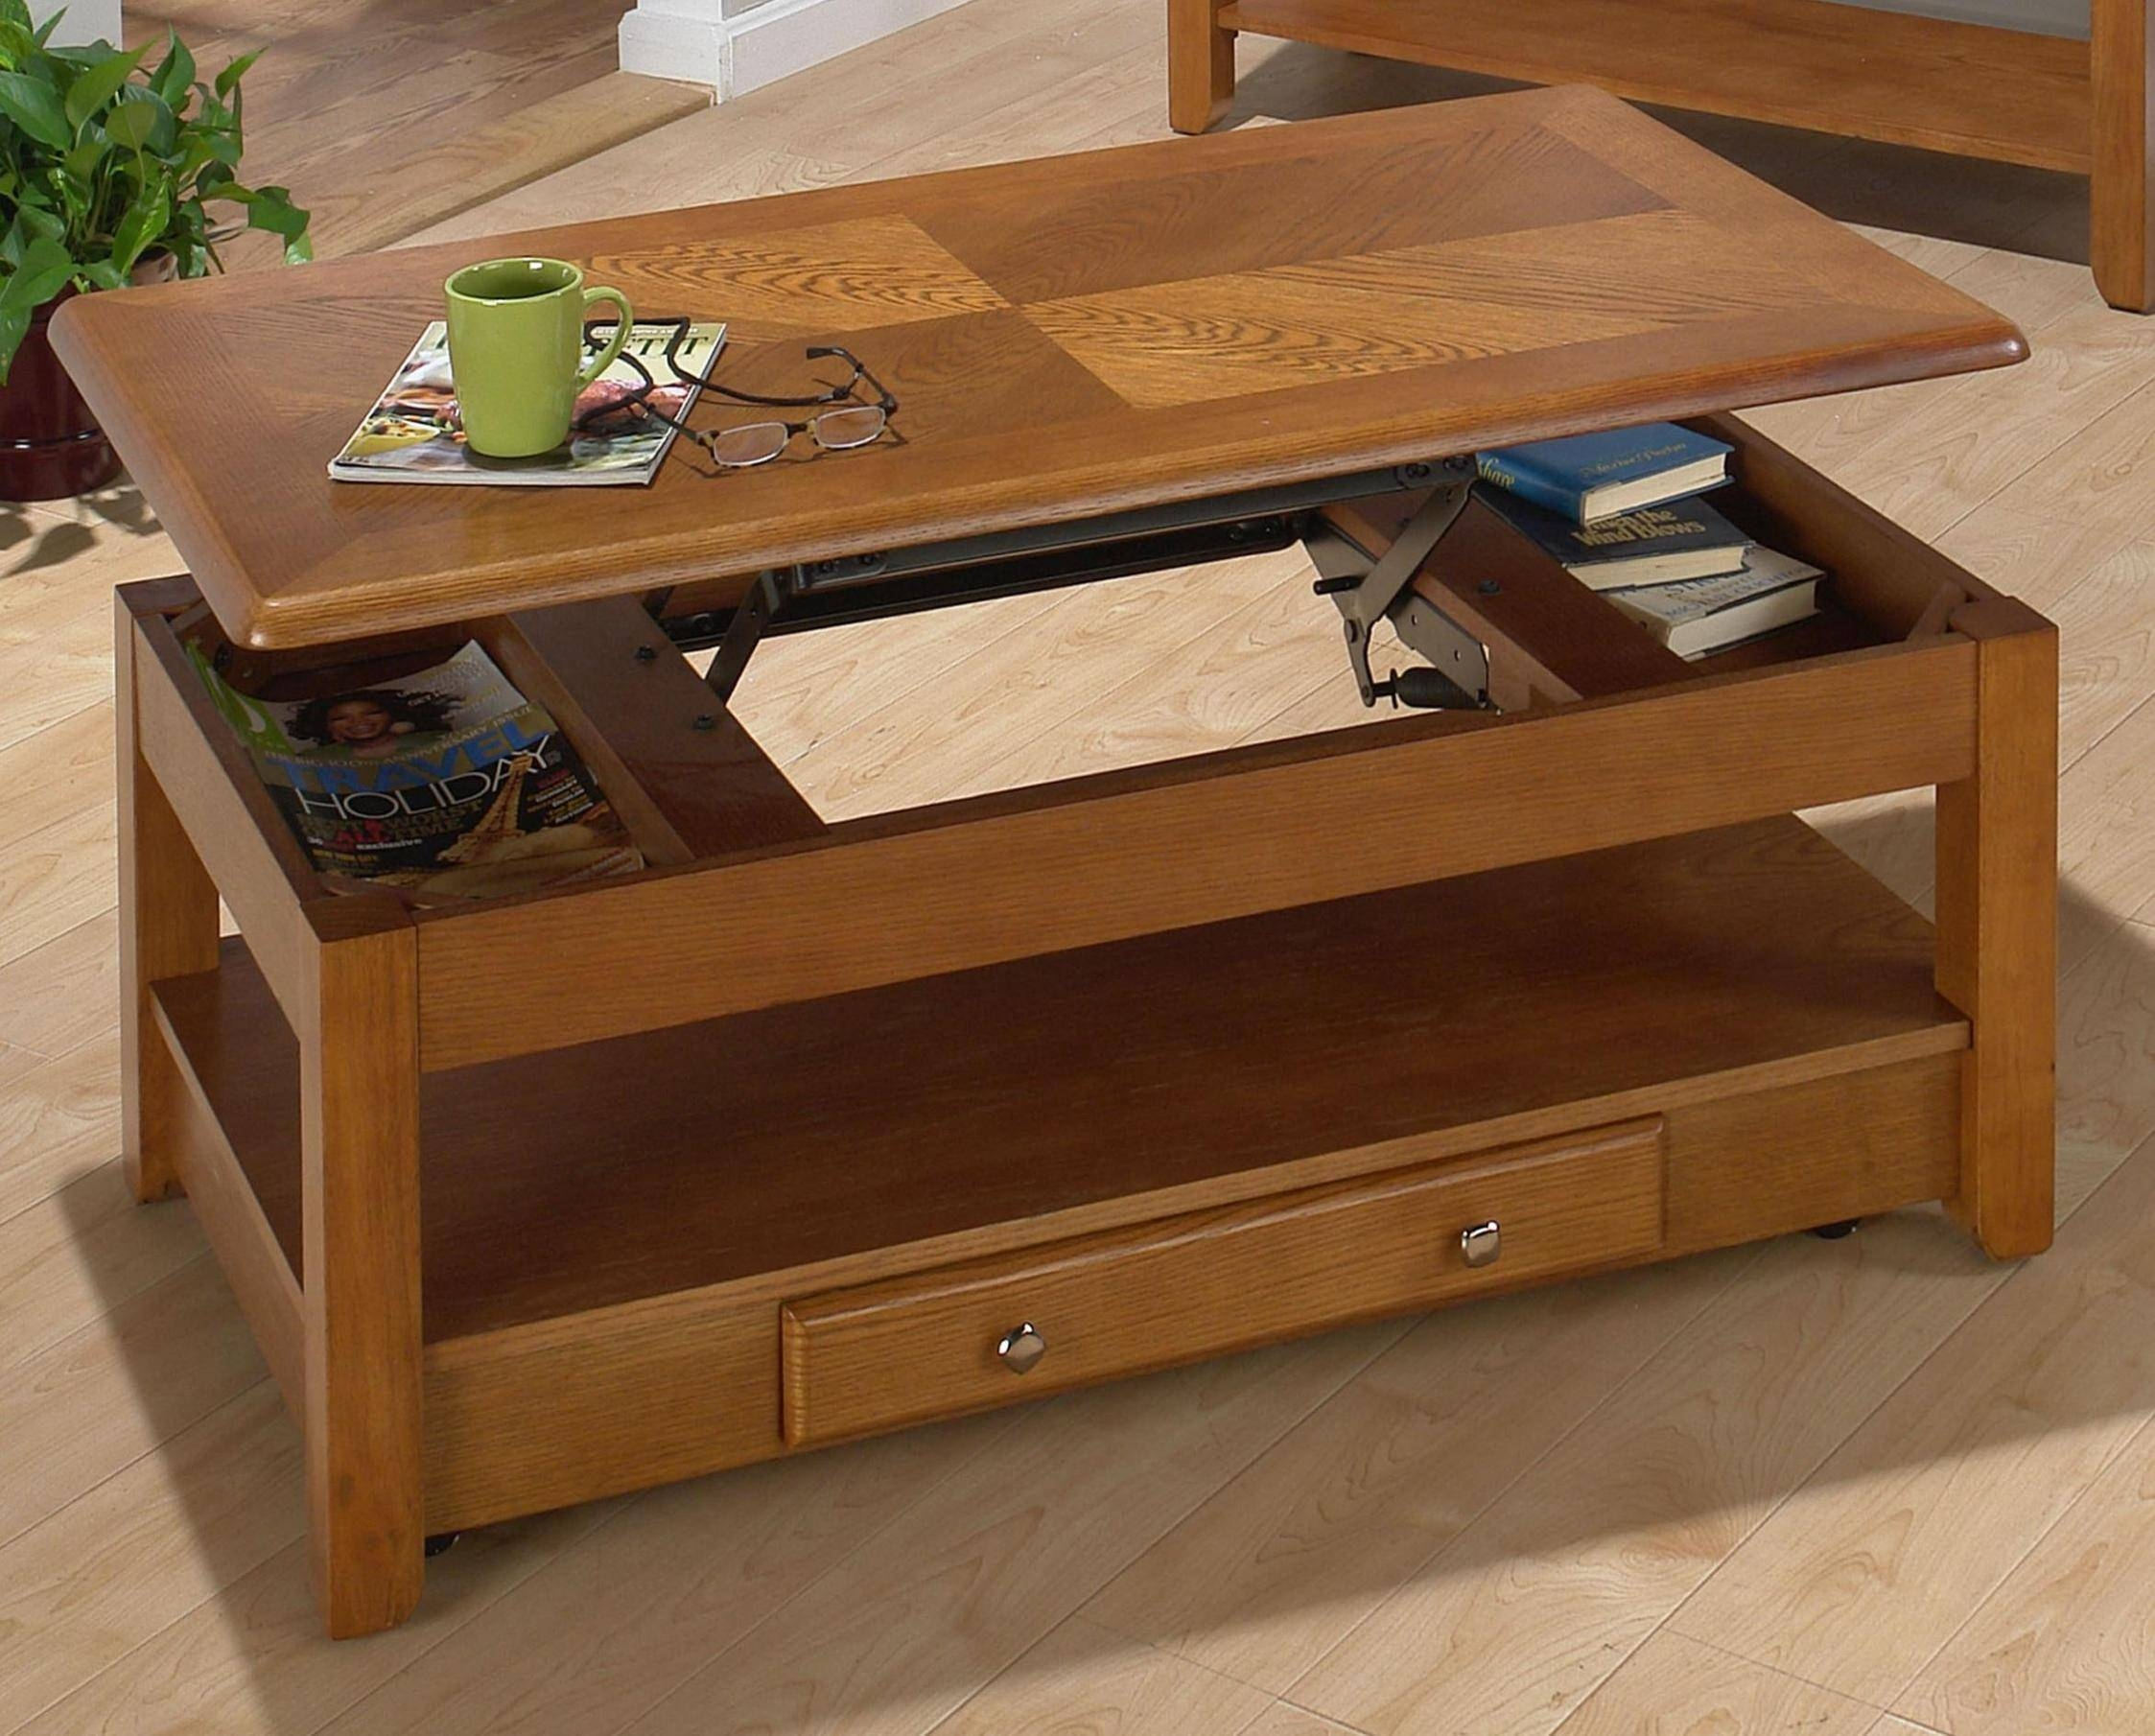 Coffee Tables Ideas: Best Coffee Table That Lifts Upozzio Intended For Raise Up Coffee Tables (View 19 of 30)